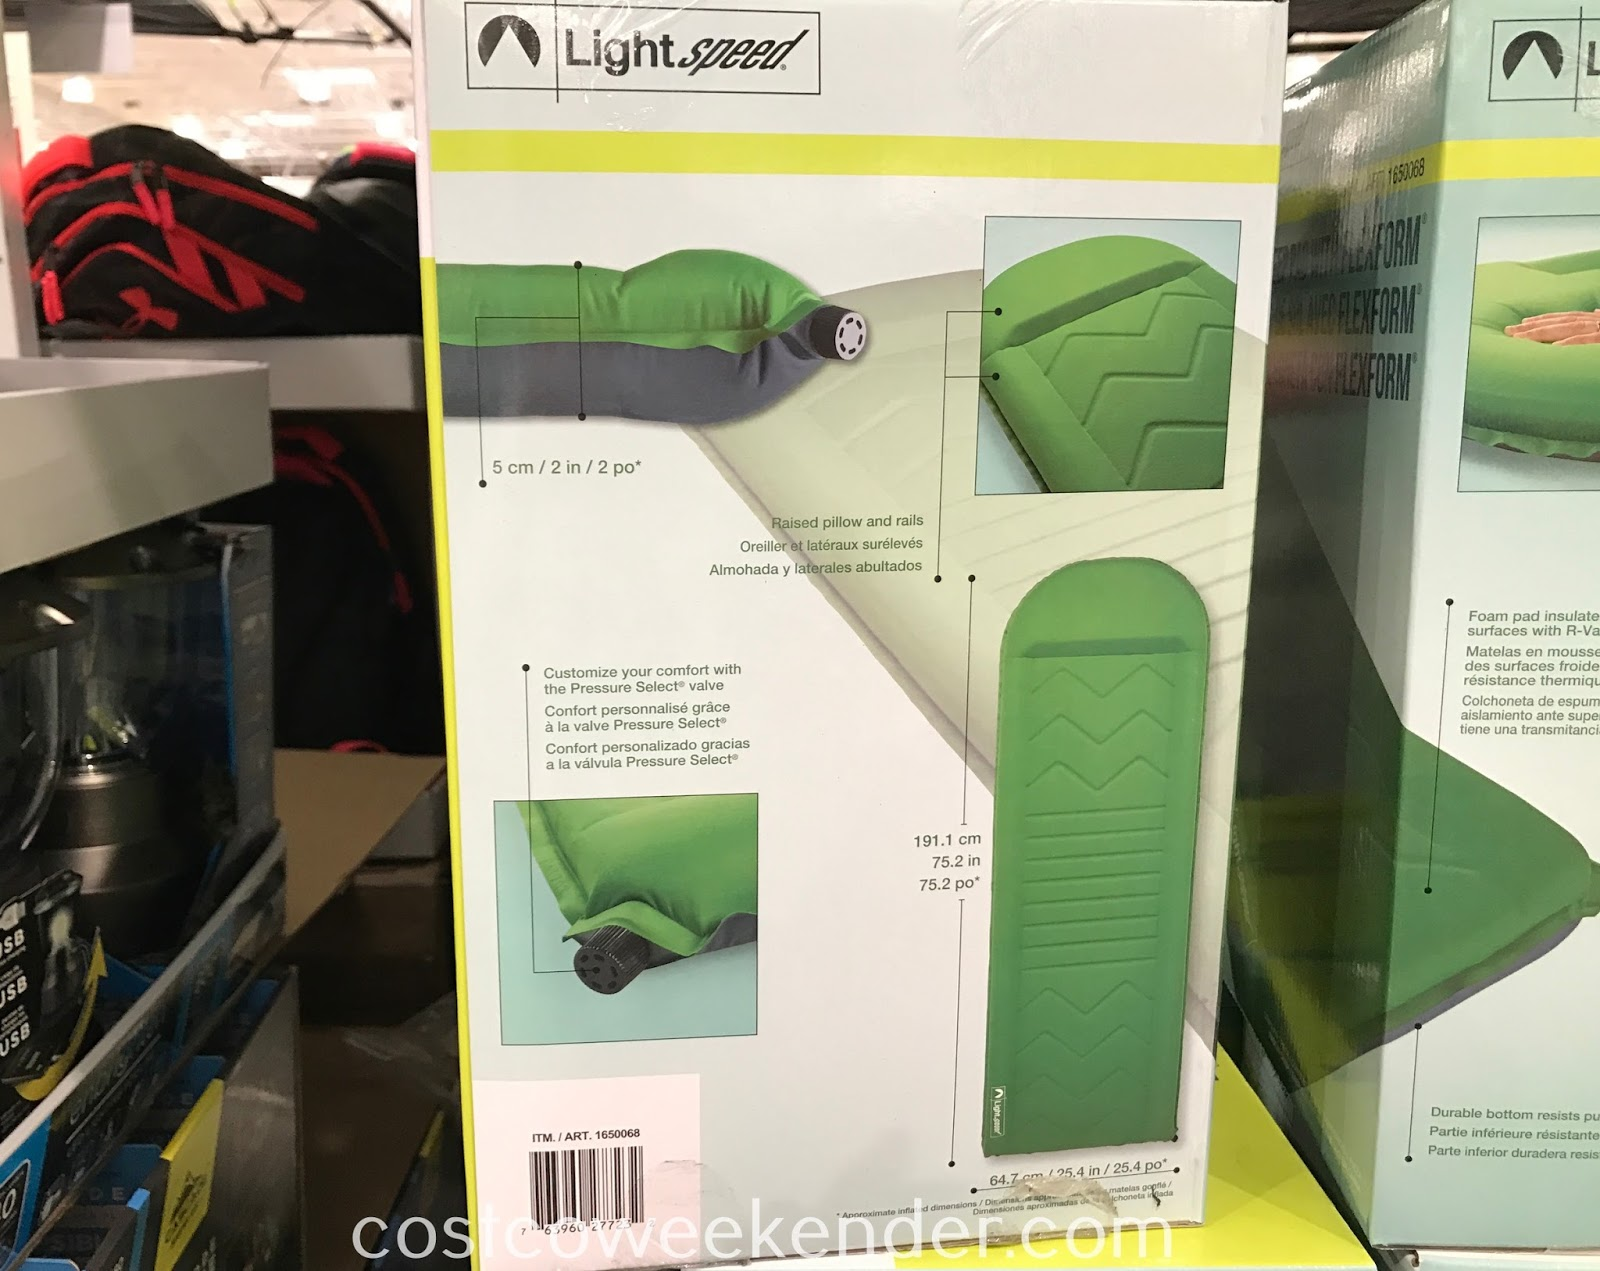 Costco 1650068 - Enjoy the best night's sleep ever, indoors or out with the Lightspeed Self-Inflating Sleep Pad with FlexForm